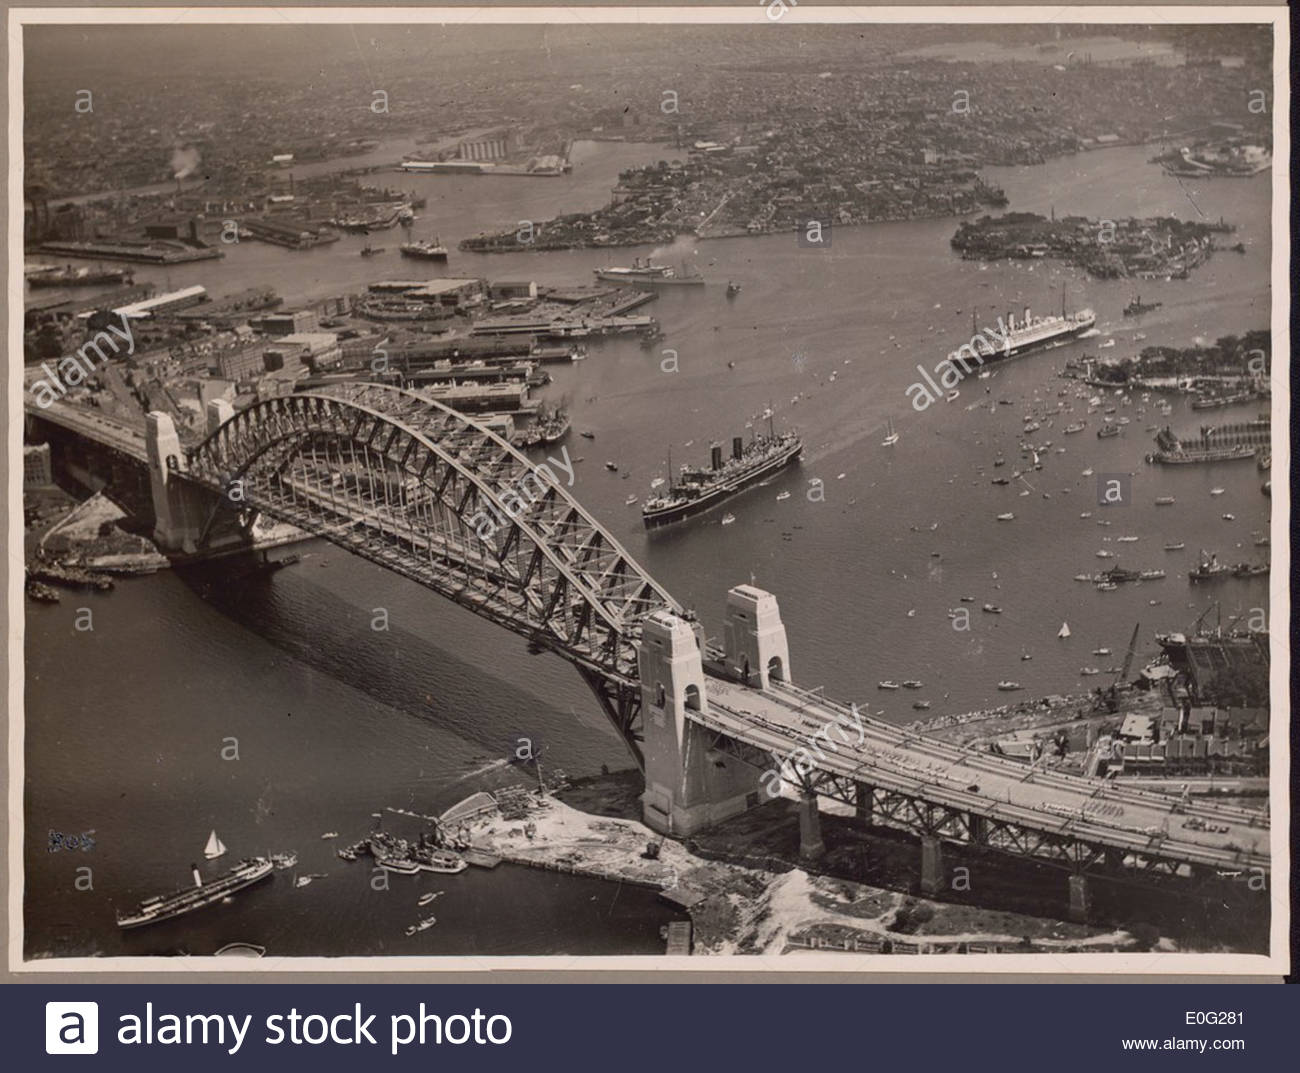 Aerial view of the procession of mail ships, Maloja, Orford, Nieuw Zeeland and Manunda at the official opening celebrations of the Sydney Harbour Bridge, 19 March, 1932 - Stock Image